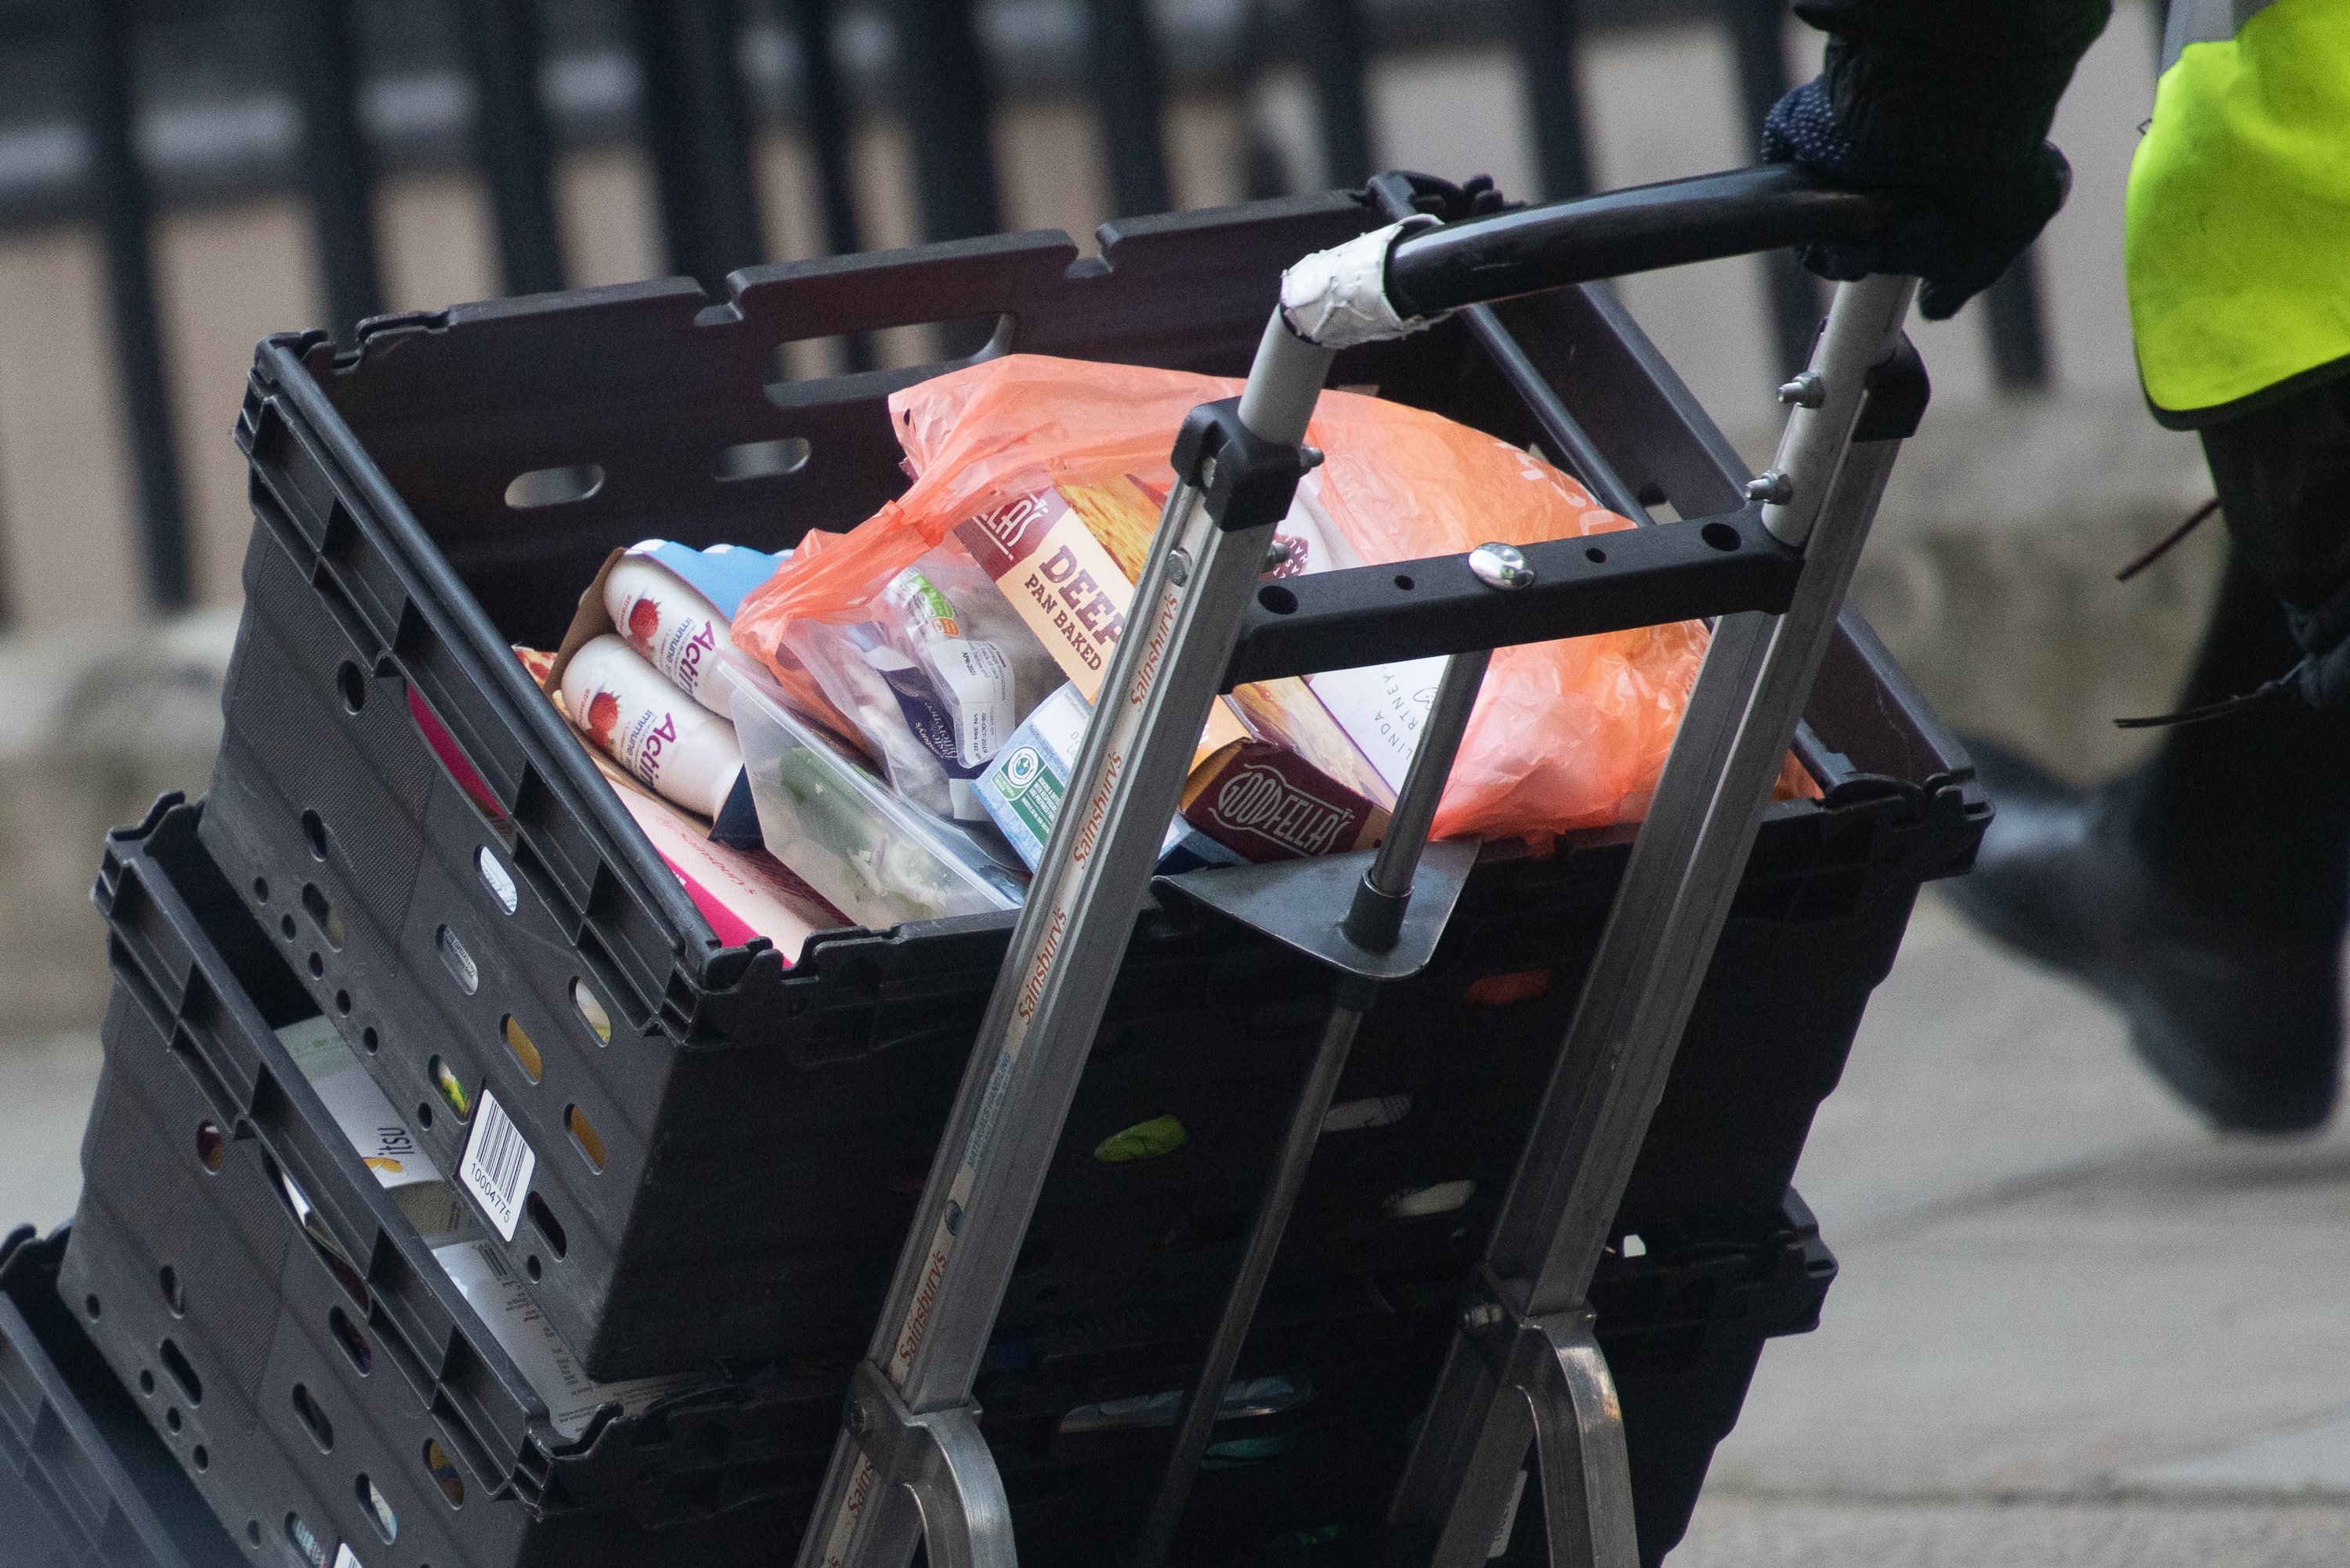 Sainsbury's Delivery - Monday 16 March 2020 - 10 Downing Street, London